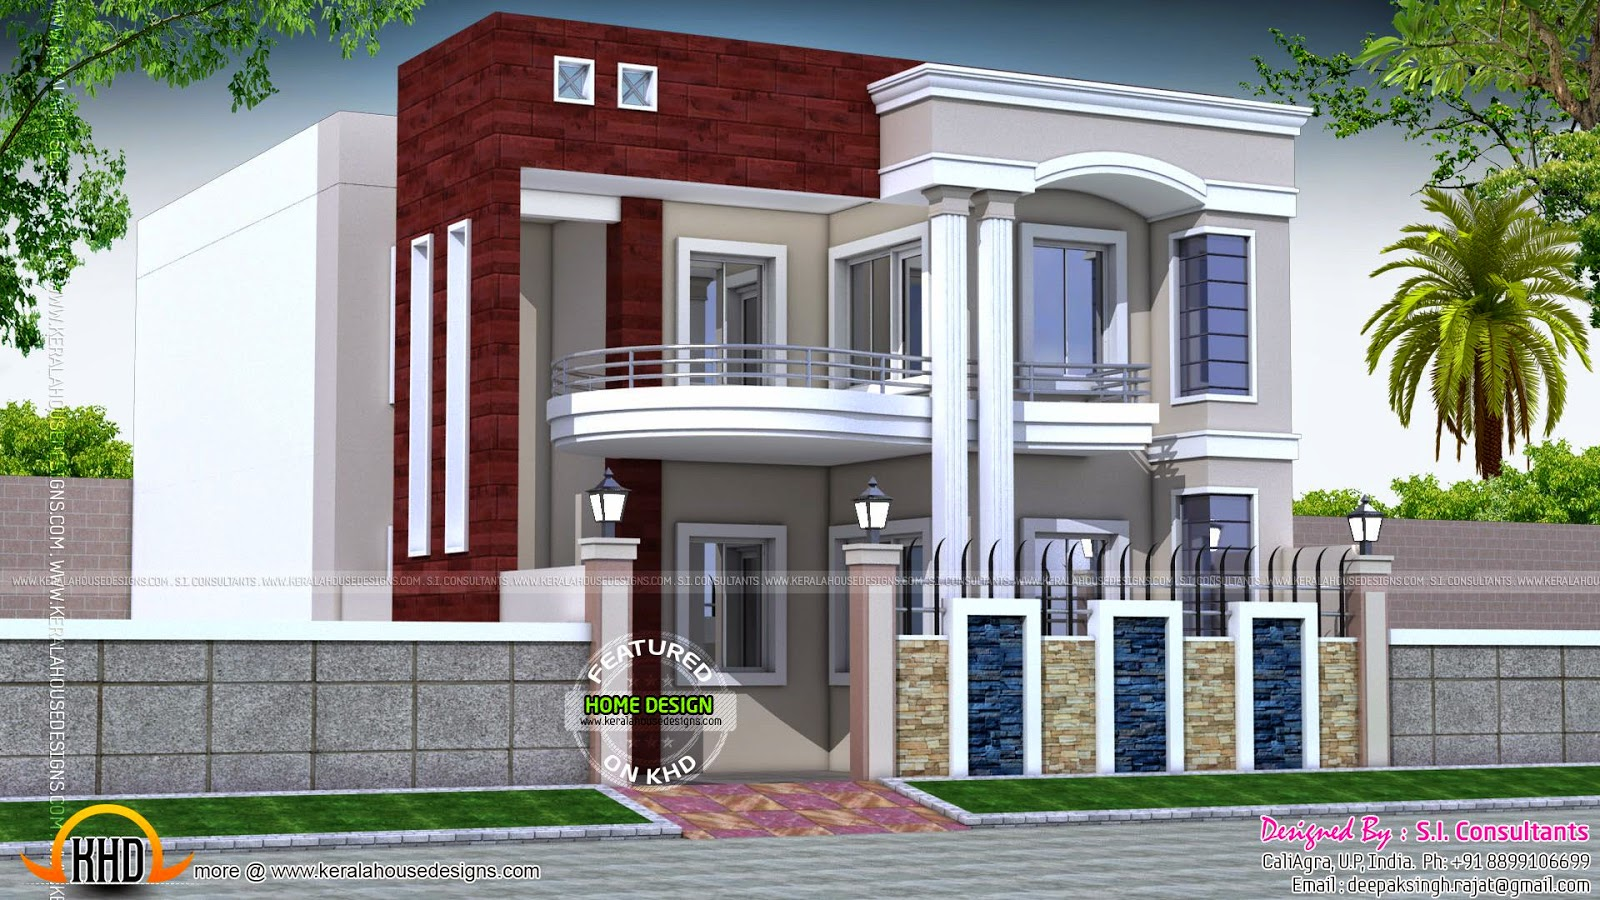 House design in north india kerala home design and floor for First floor house plans in india